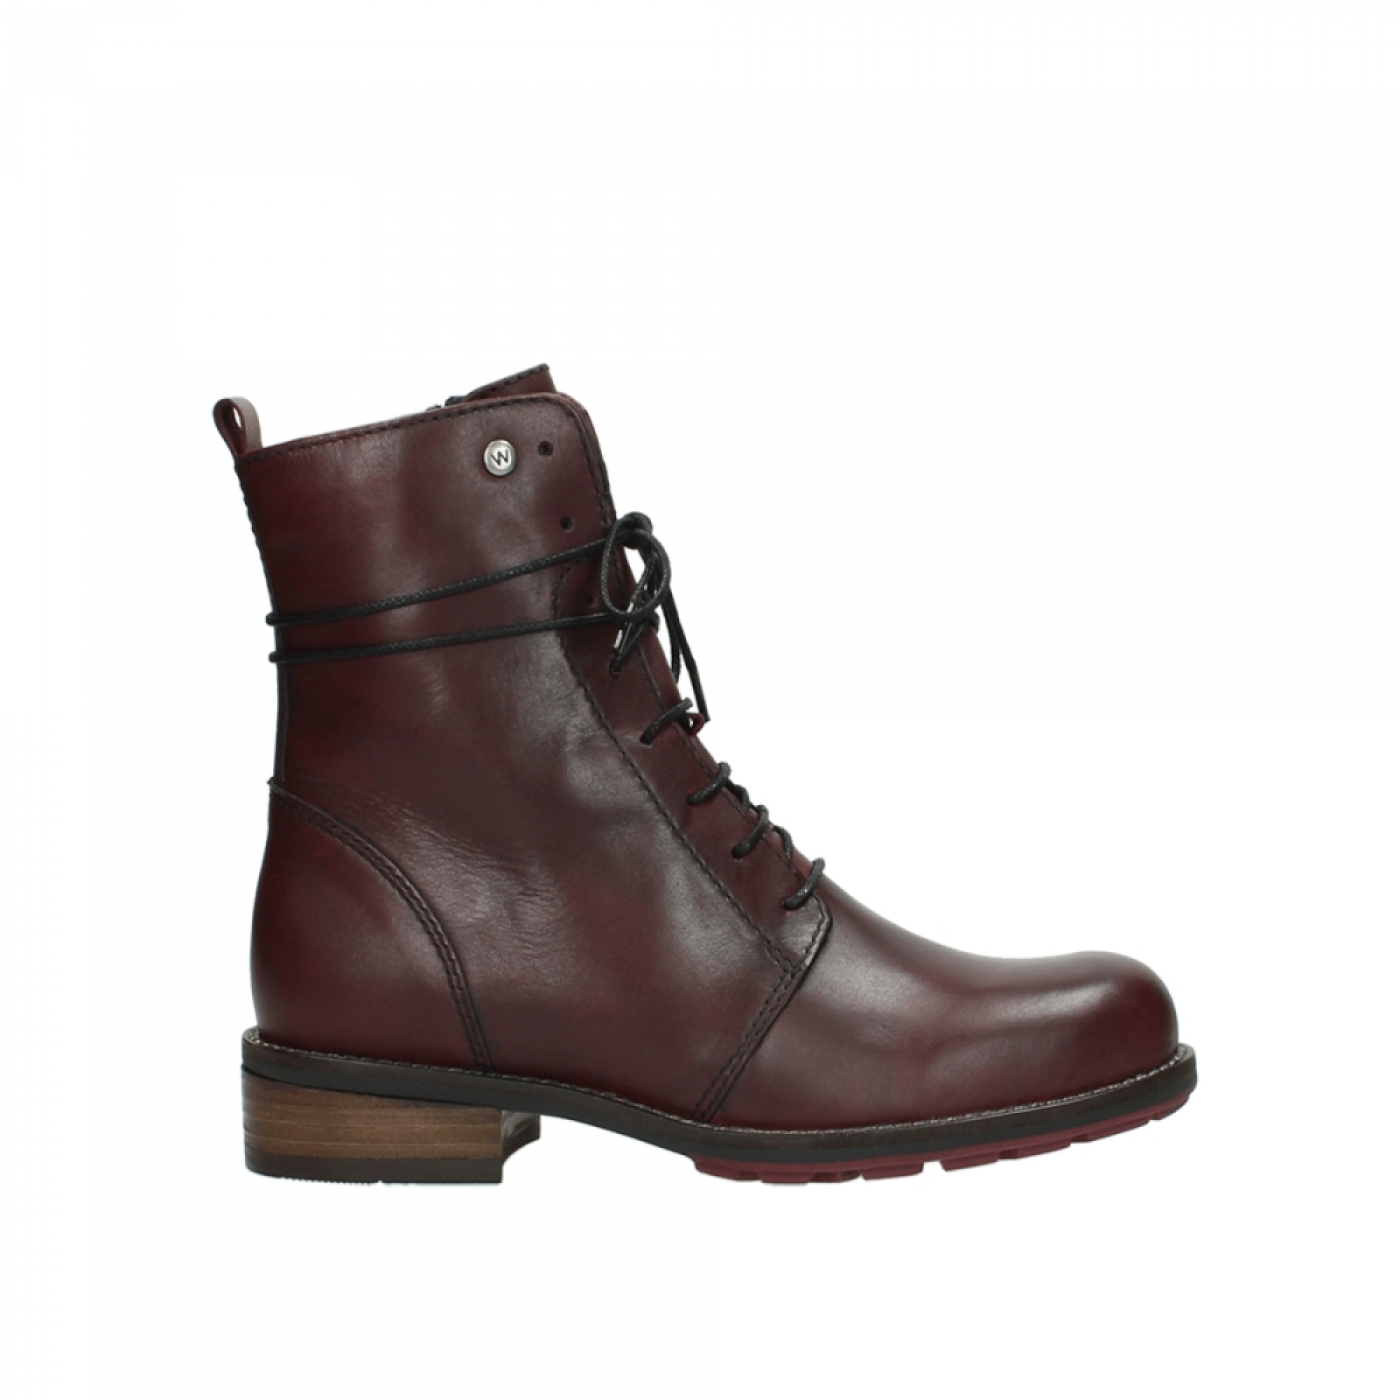 04432 Murray 20510 burgundy leather